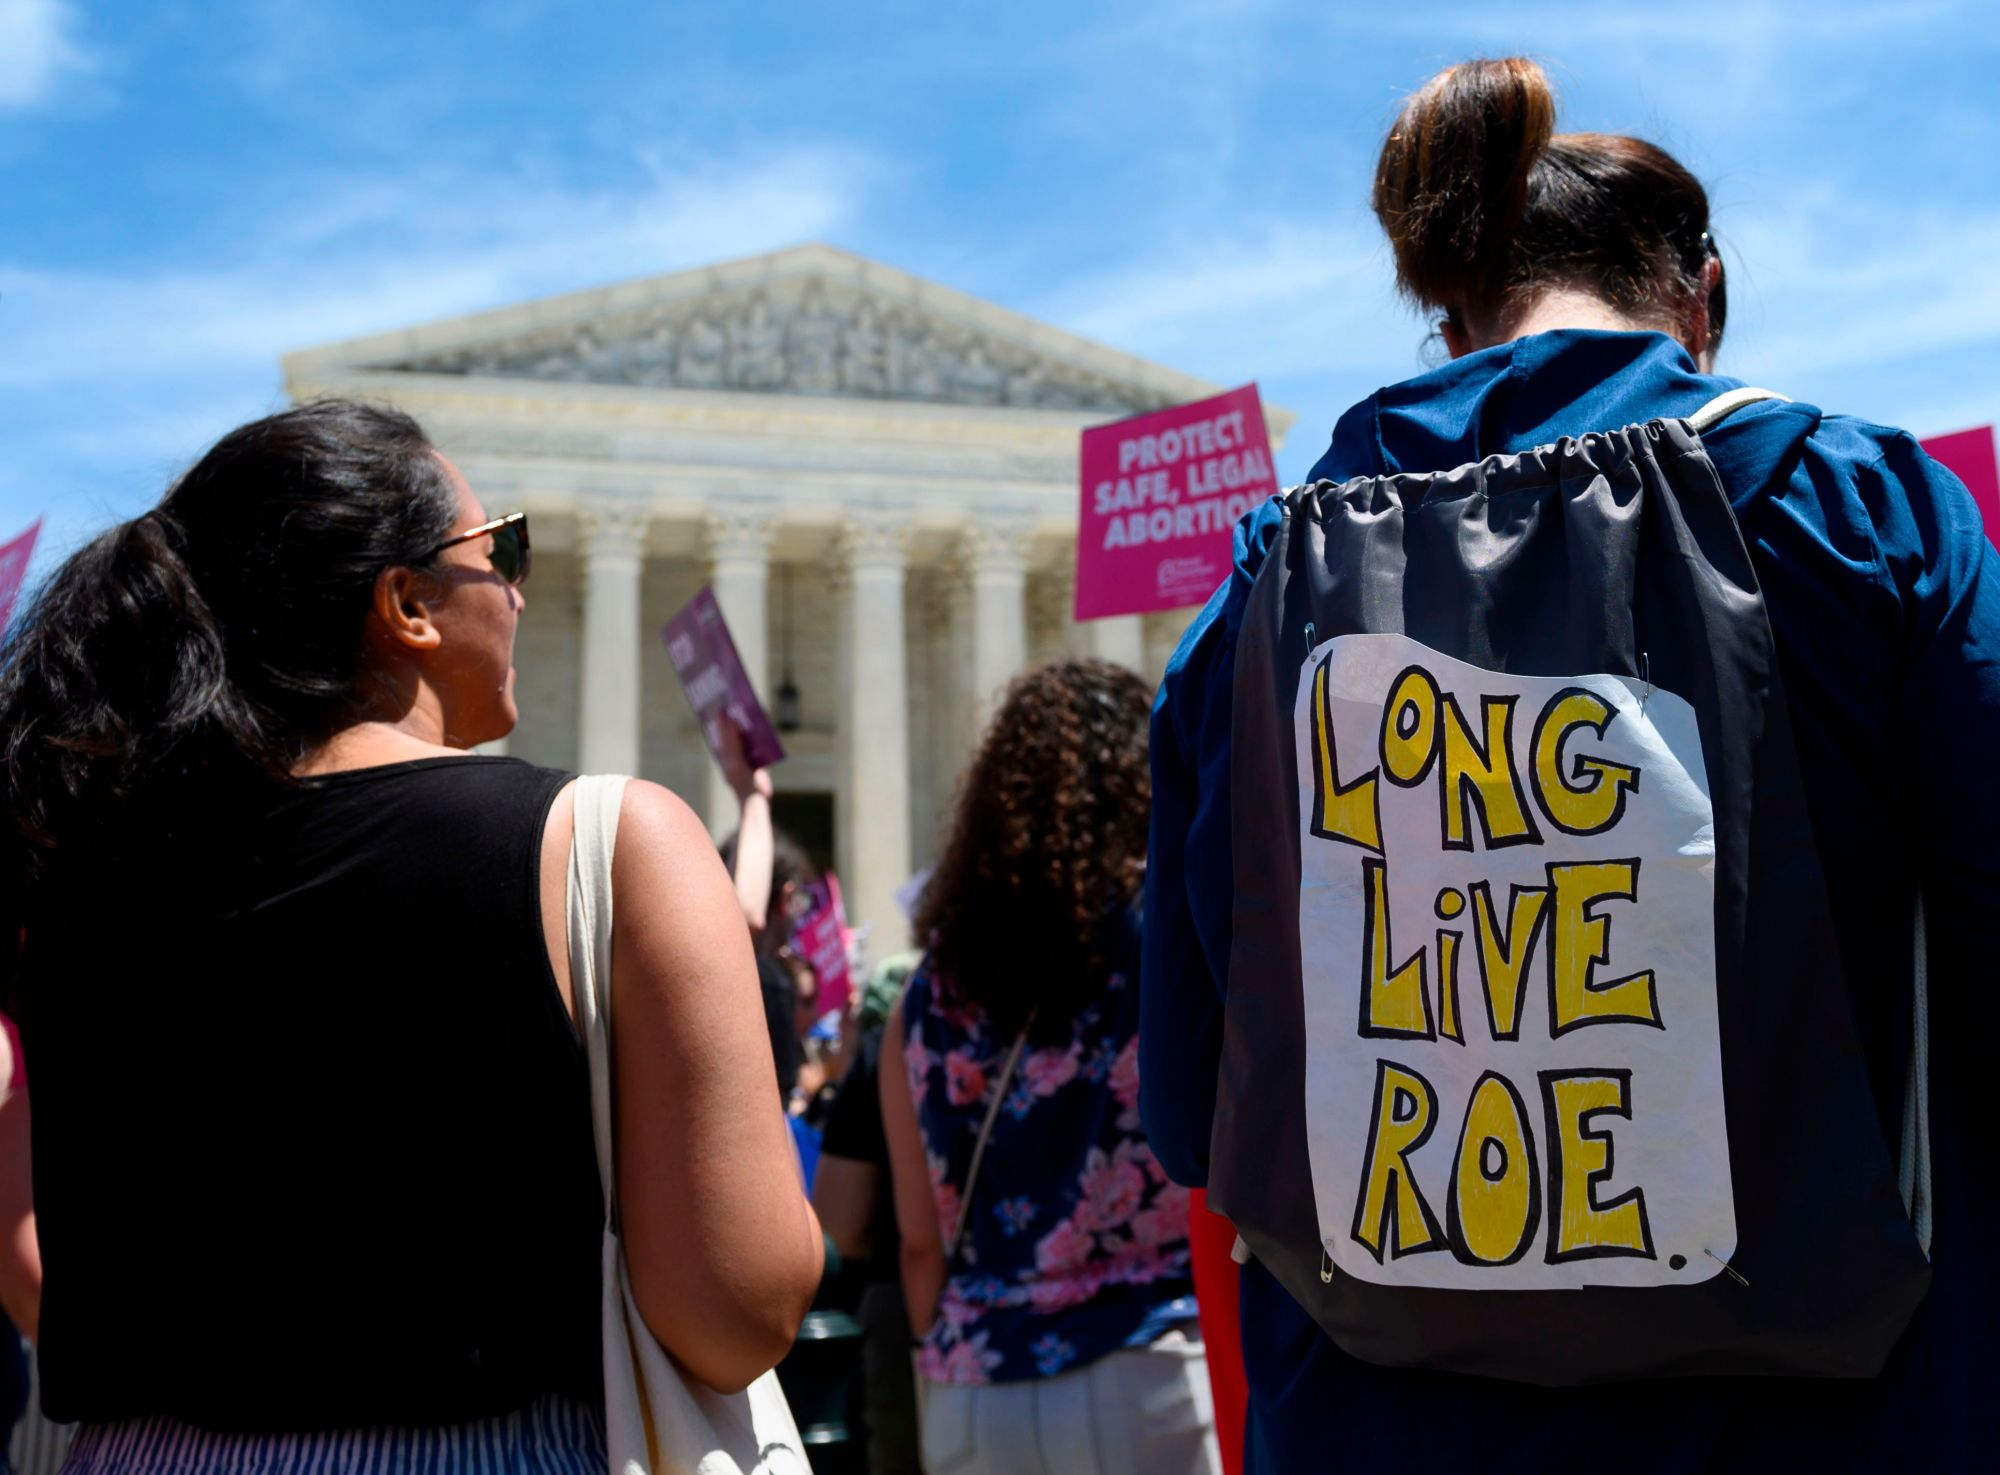 Abortion rights activists rally in front of the U.S. Supreme Court in Washington, D.C. on May 21, 2019. (ANDREW CABALLERO-REYNOLDS/AFP via Getty Images)